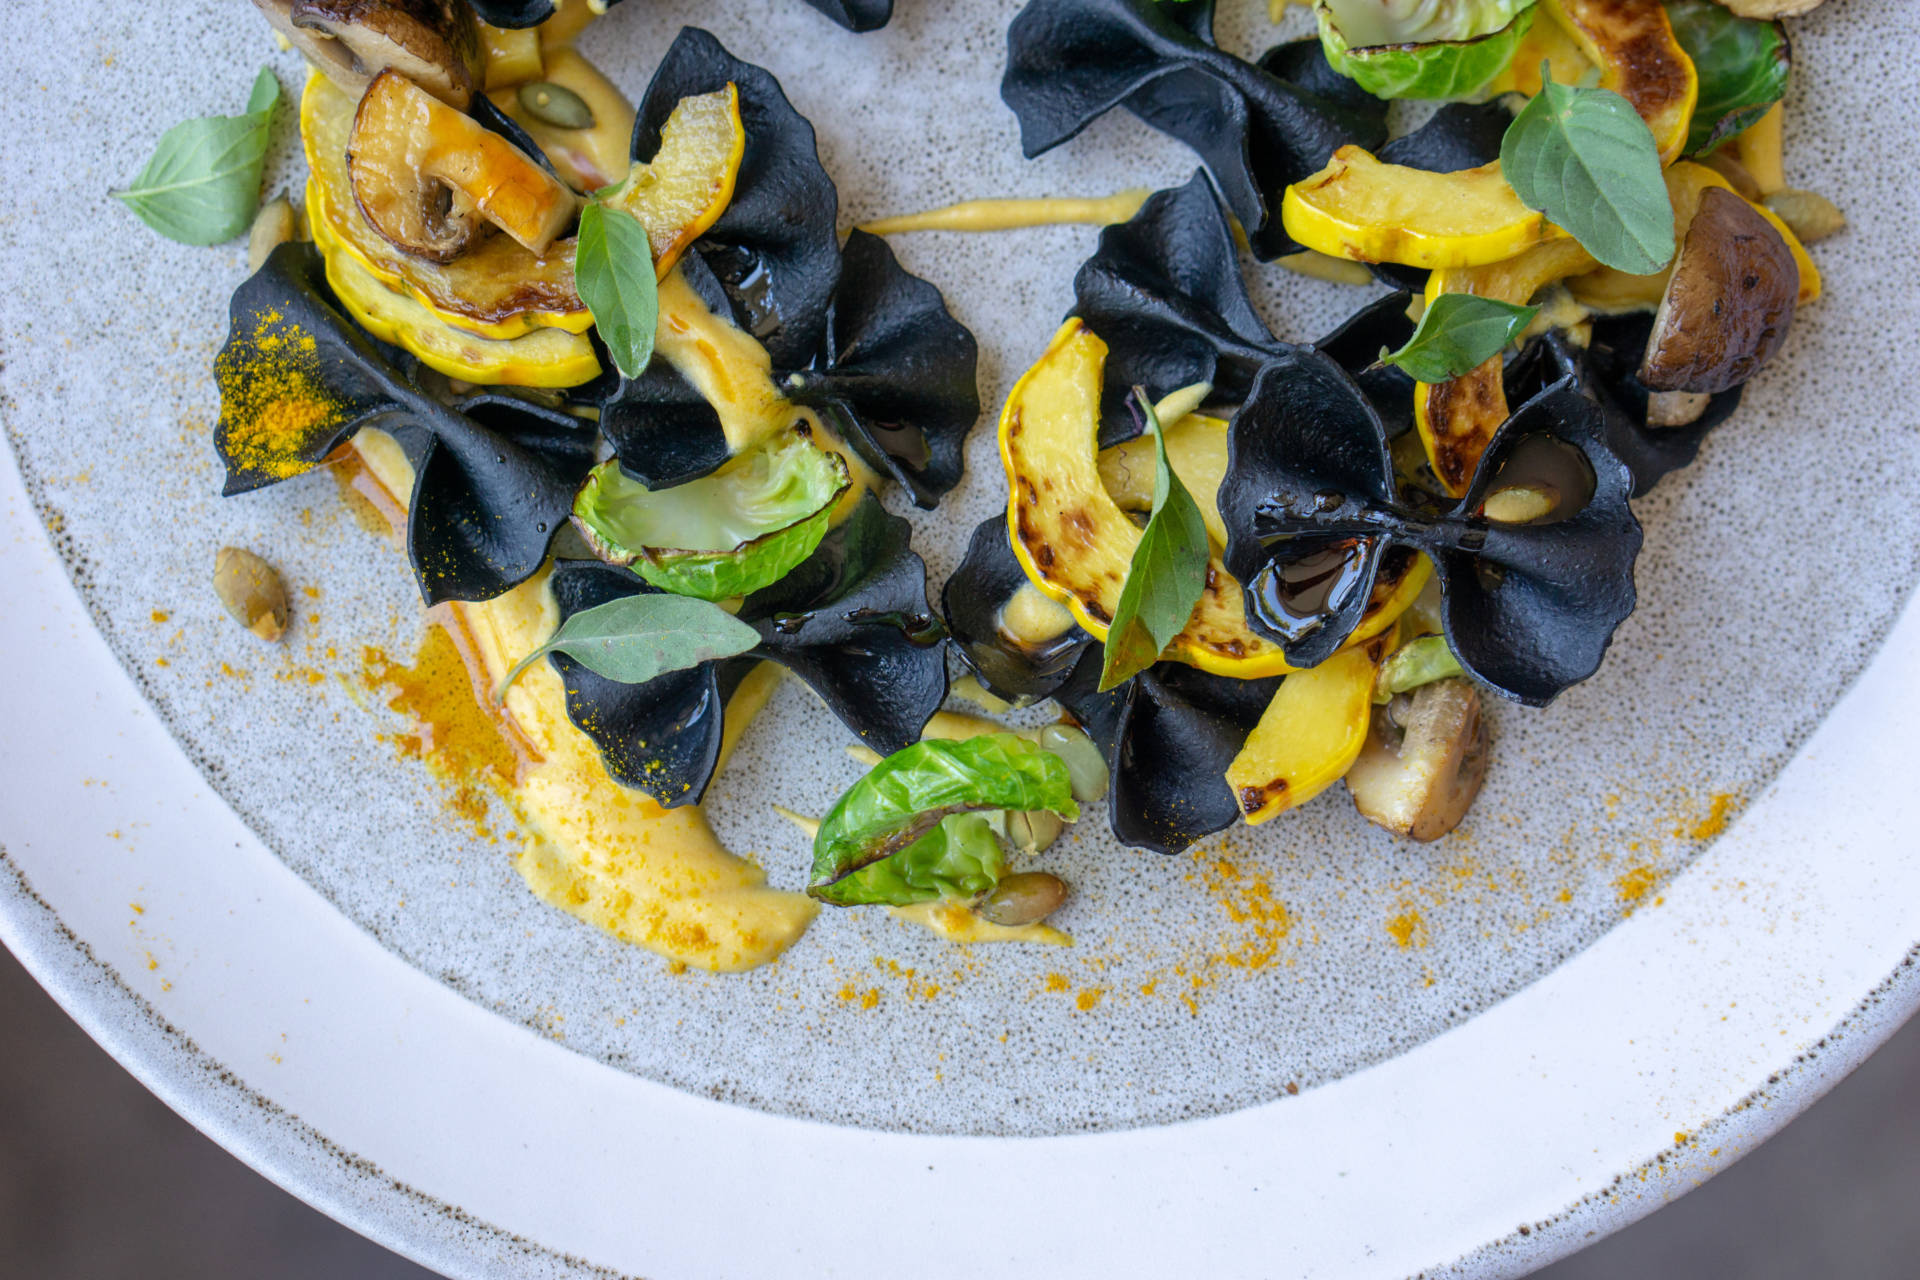 The charcoal farfalle dish from Merchant Roots.